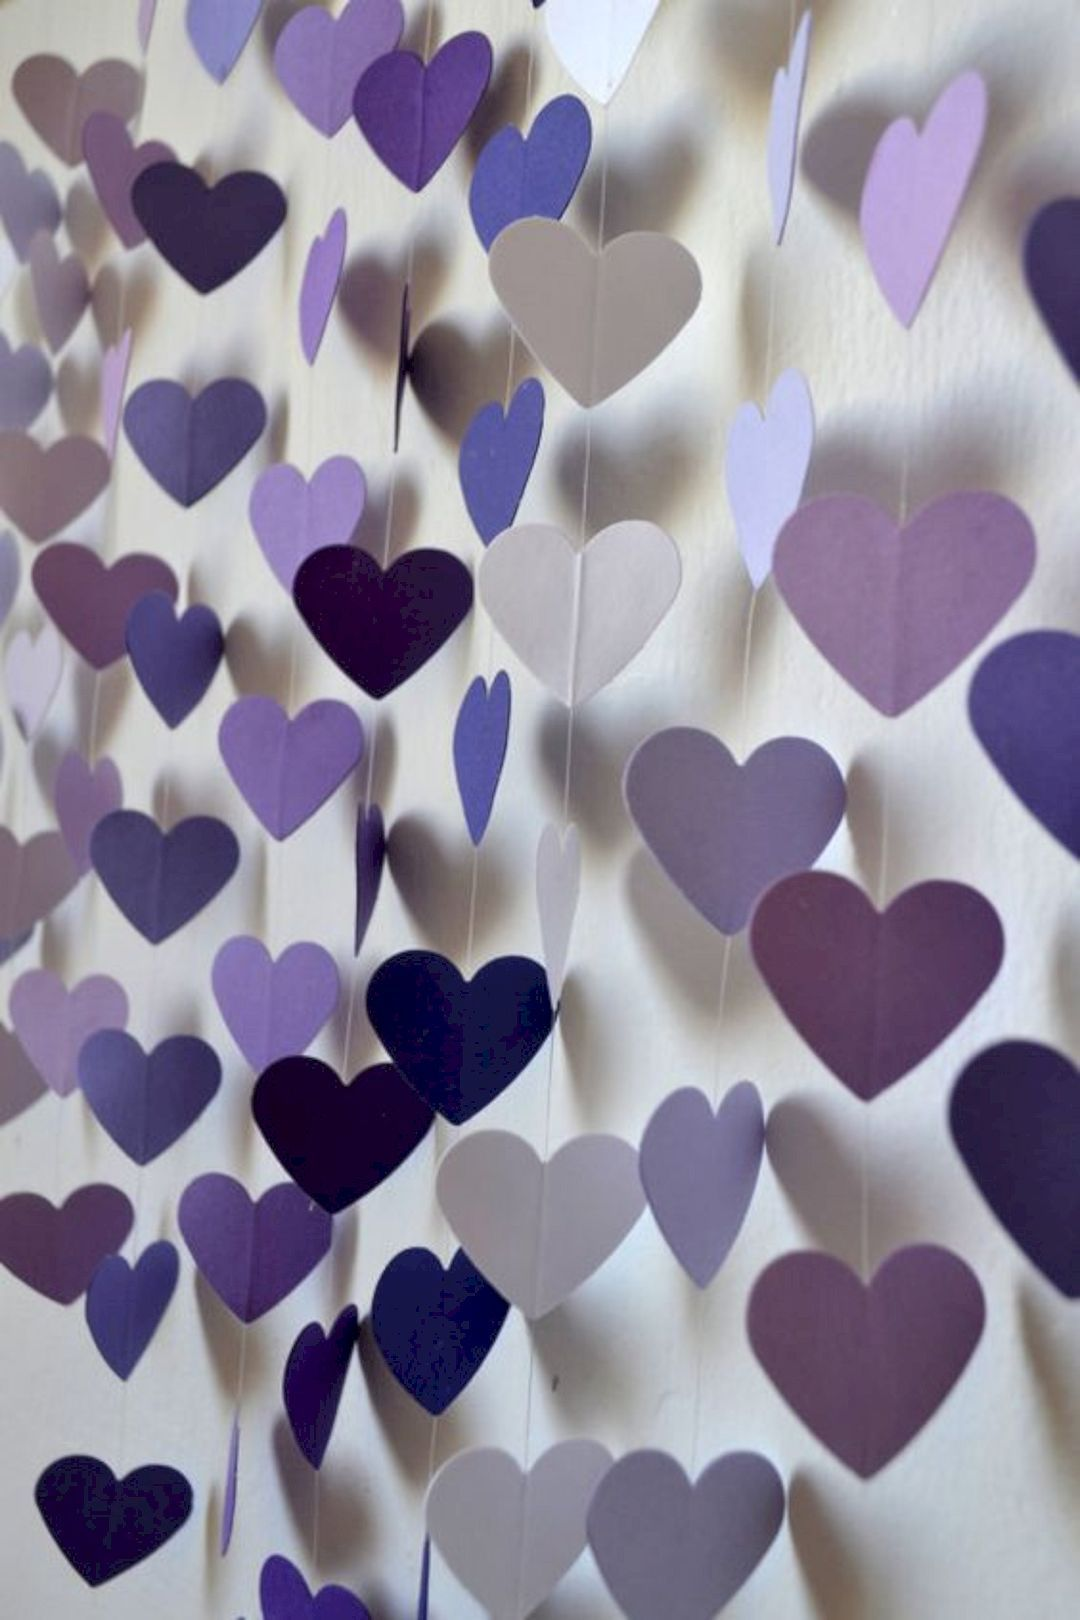 15 Stunning Purple Wall Decorations Diy Wedding Decorations Purple Wall Decor Purple Wedding